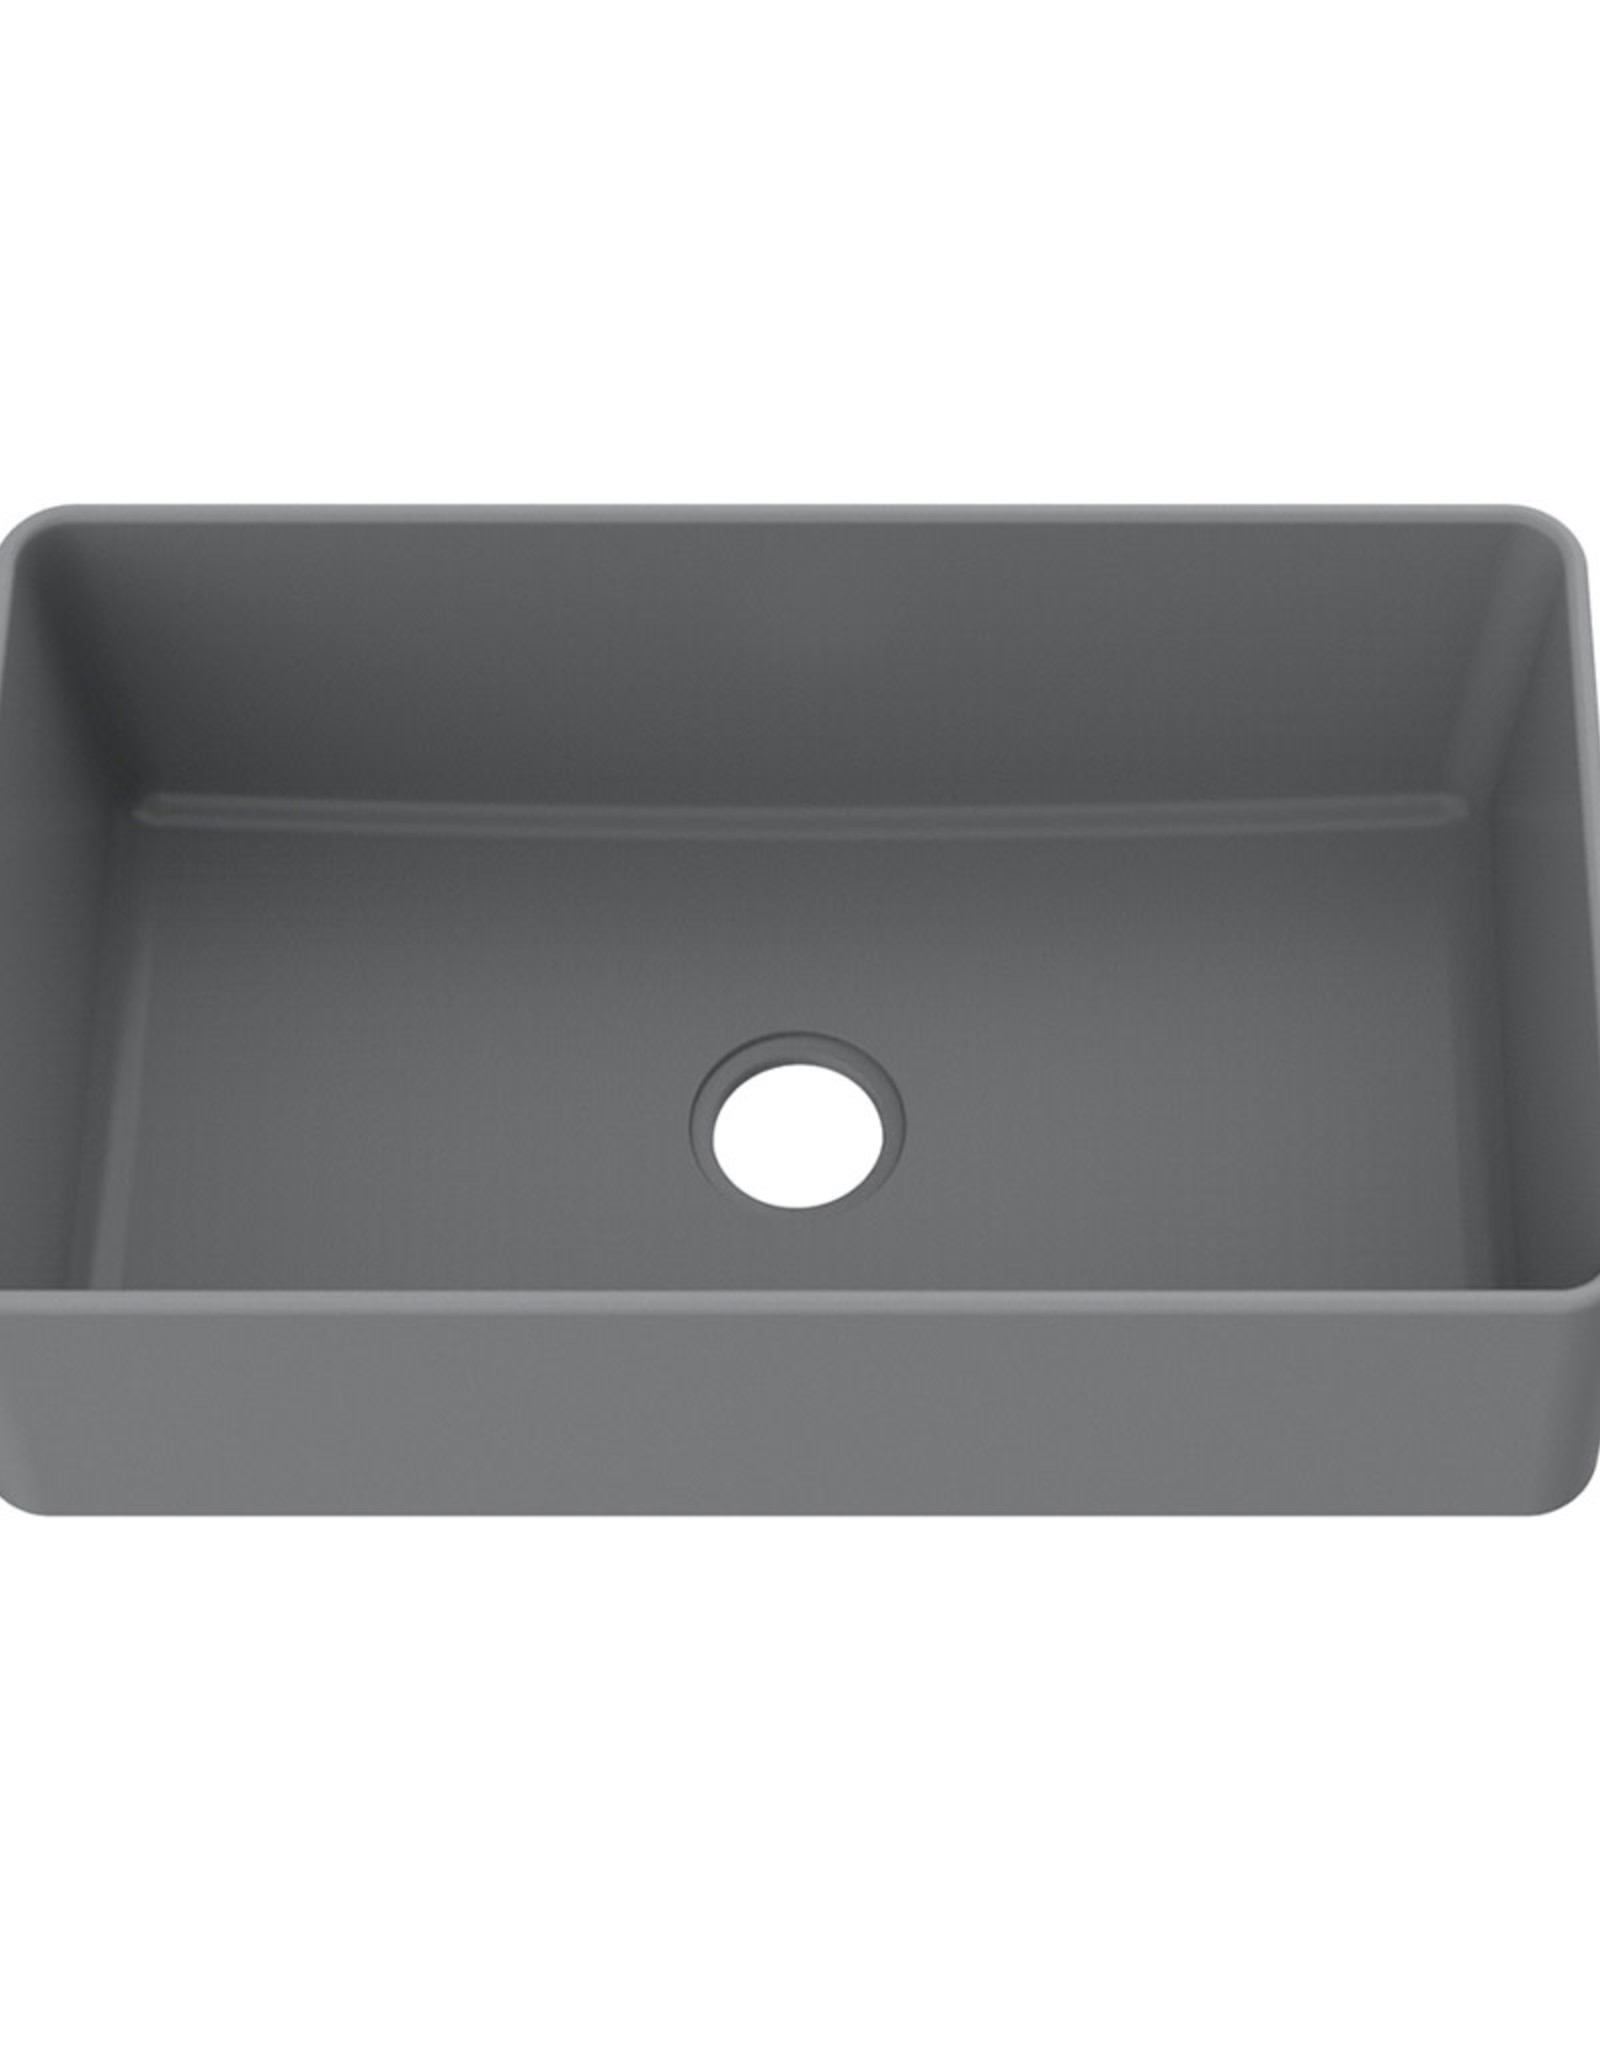 "Vogt Vogt Neustadt GS Vogranite Apron Front Kitchen Sink 33"" x 19"" x 9"""